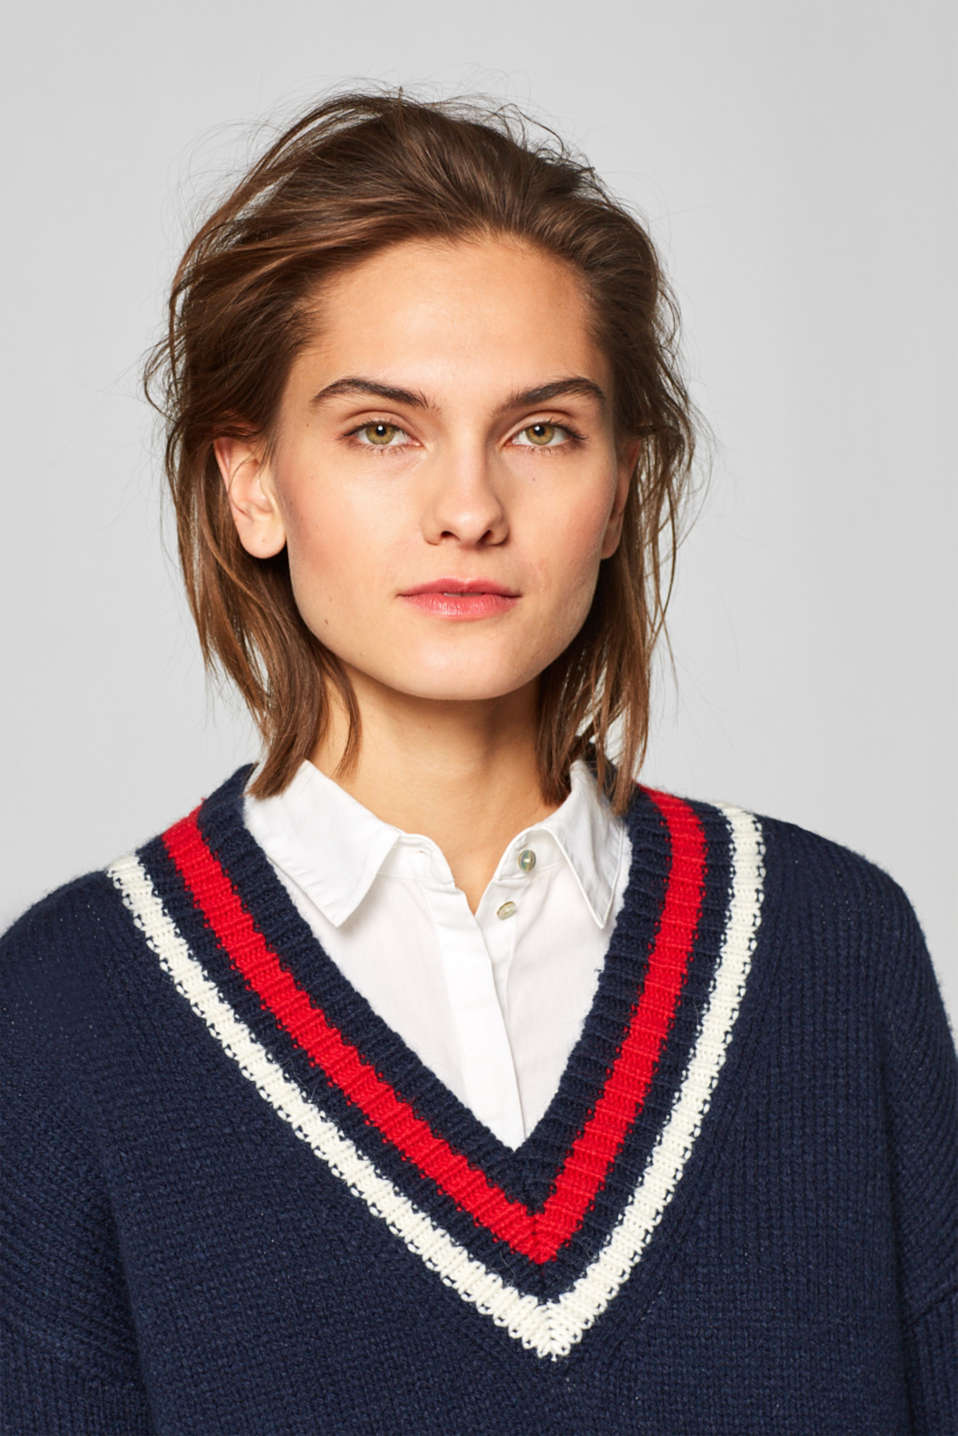 Esprit - With wool: Long college style jumper